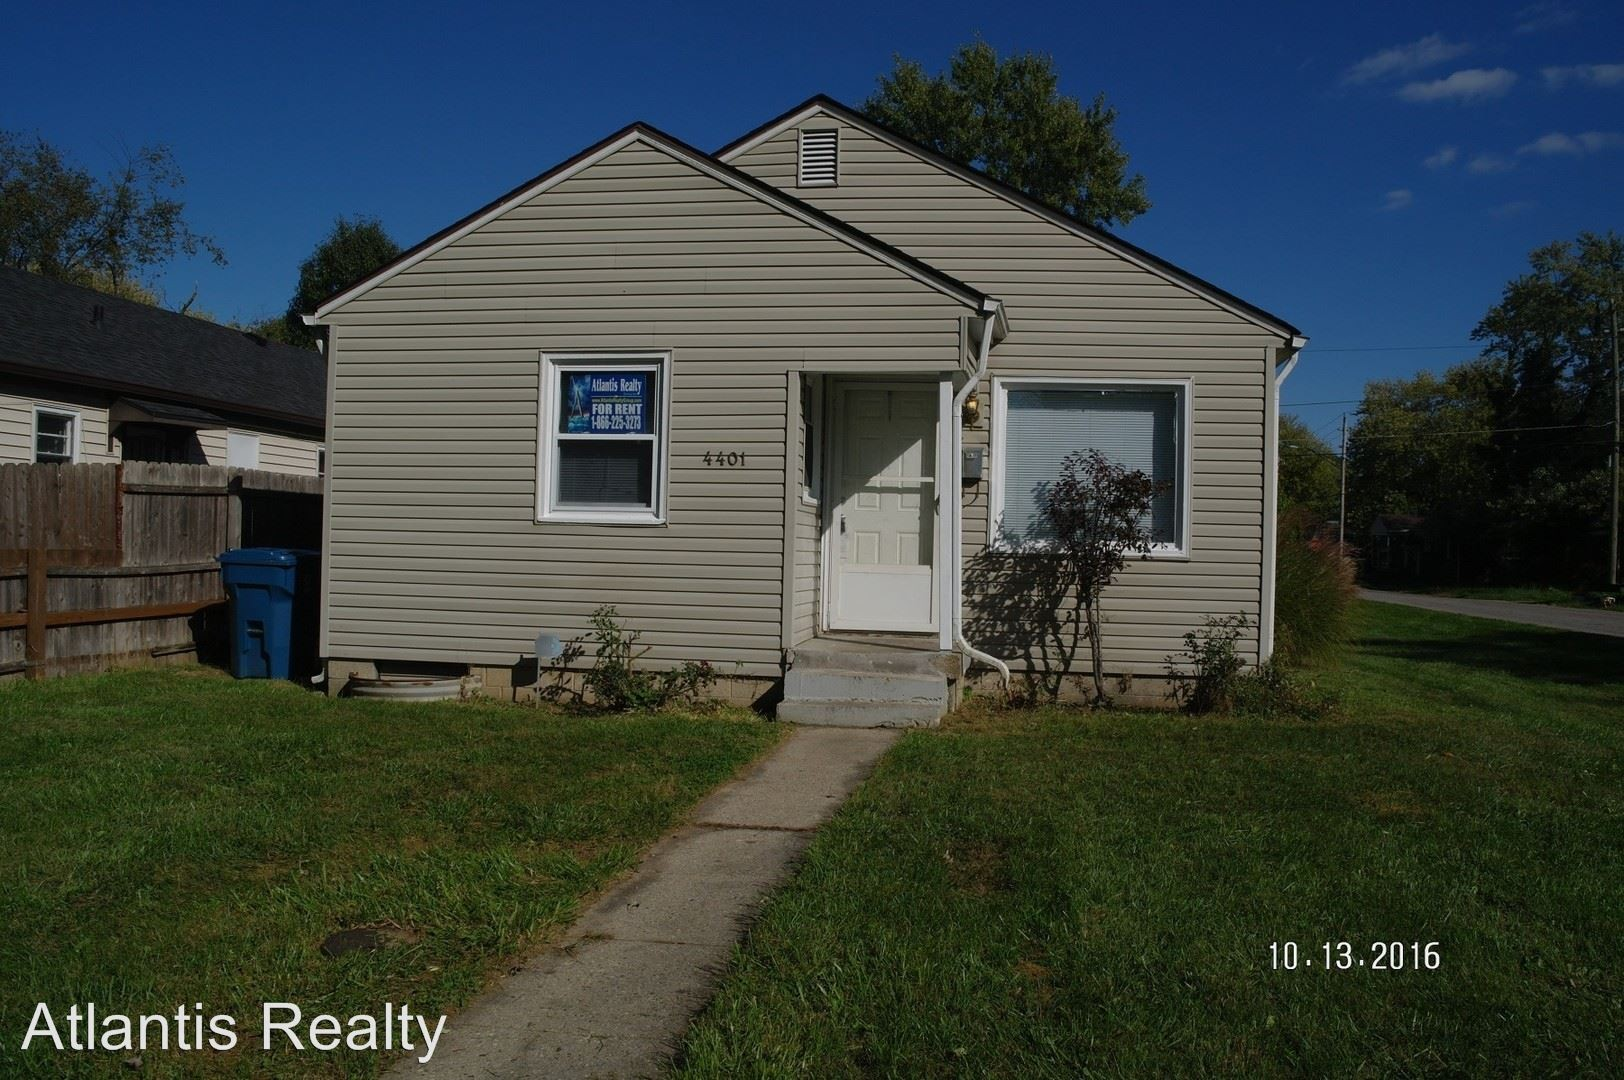 4401 norwaldo ave indianapolis in 46205 2 bedroom house for rent for 650 month zumper